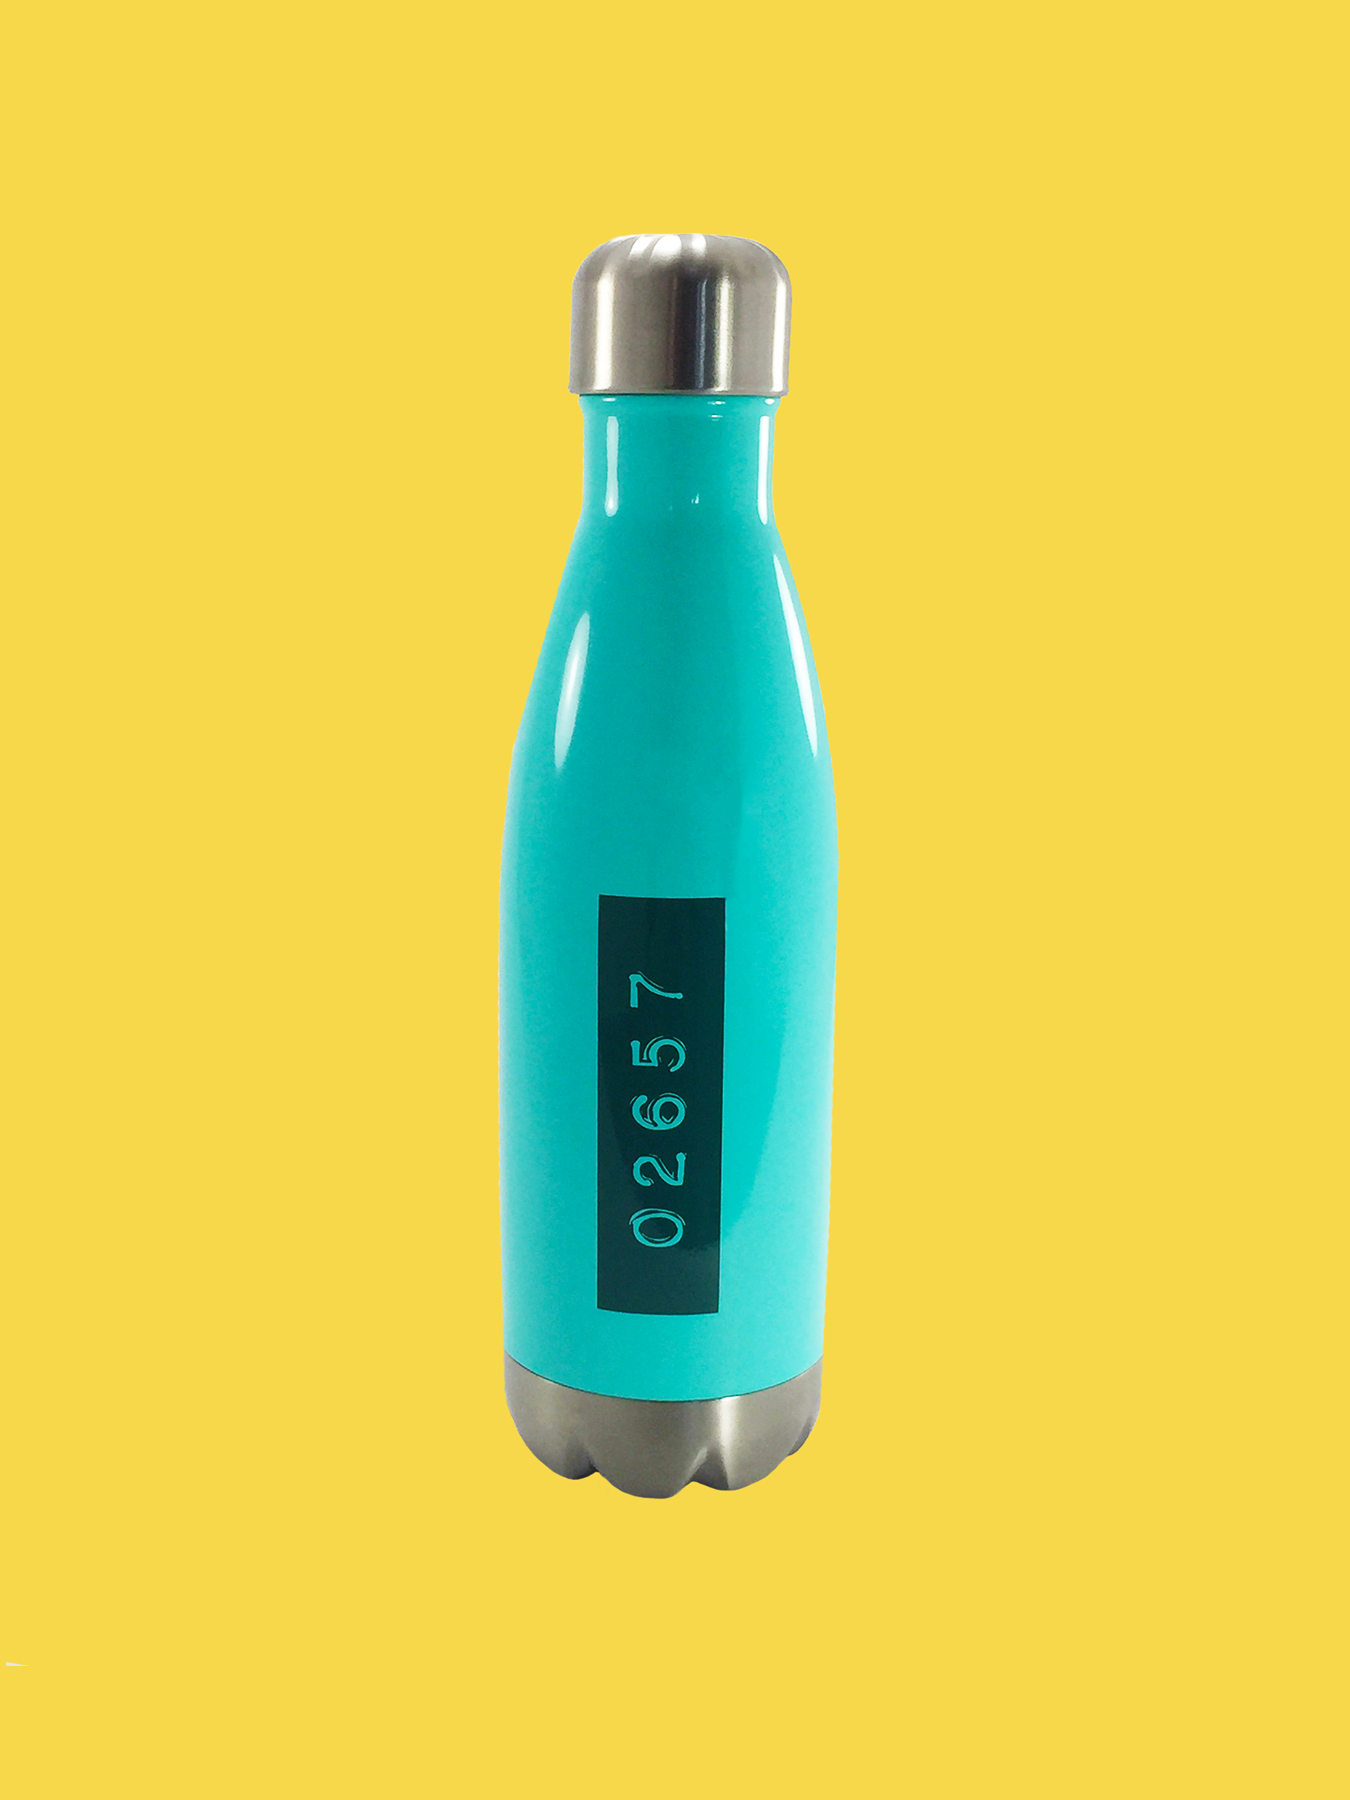 WATER BOTTLE: 02657, Turquoise